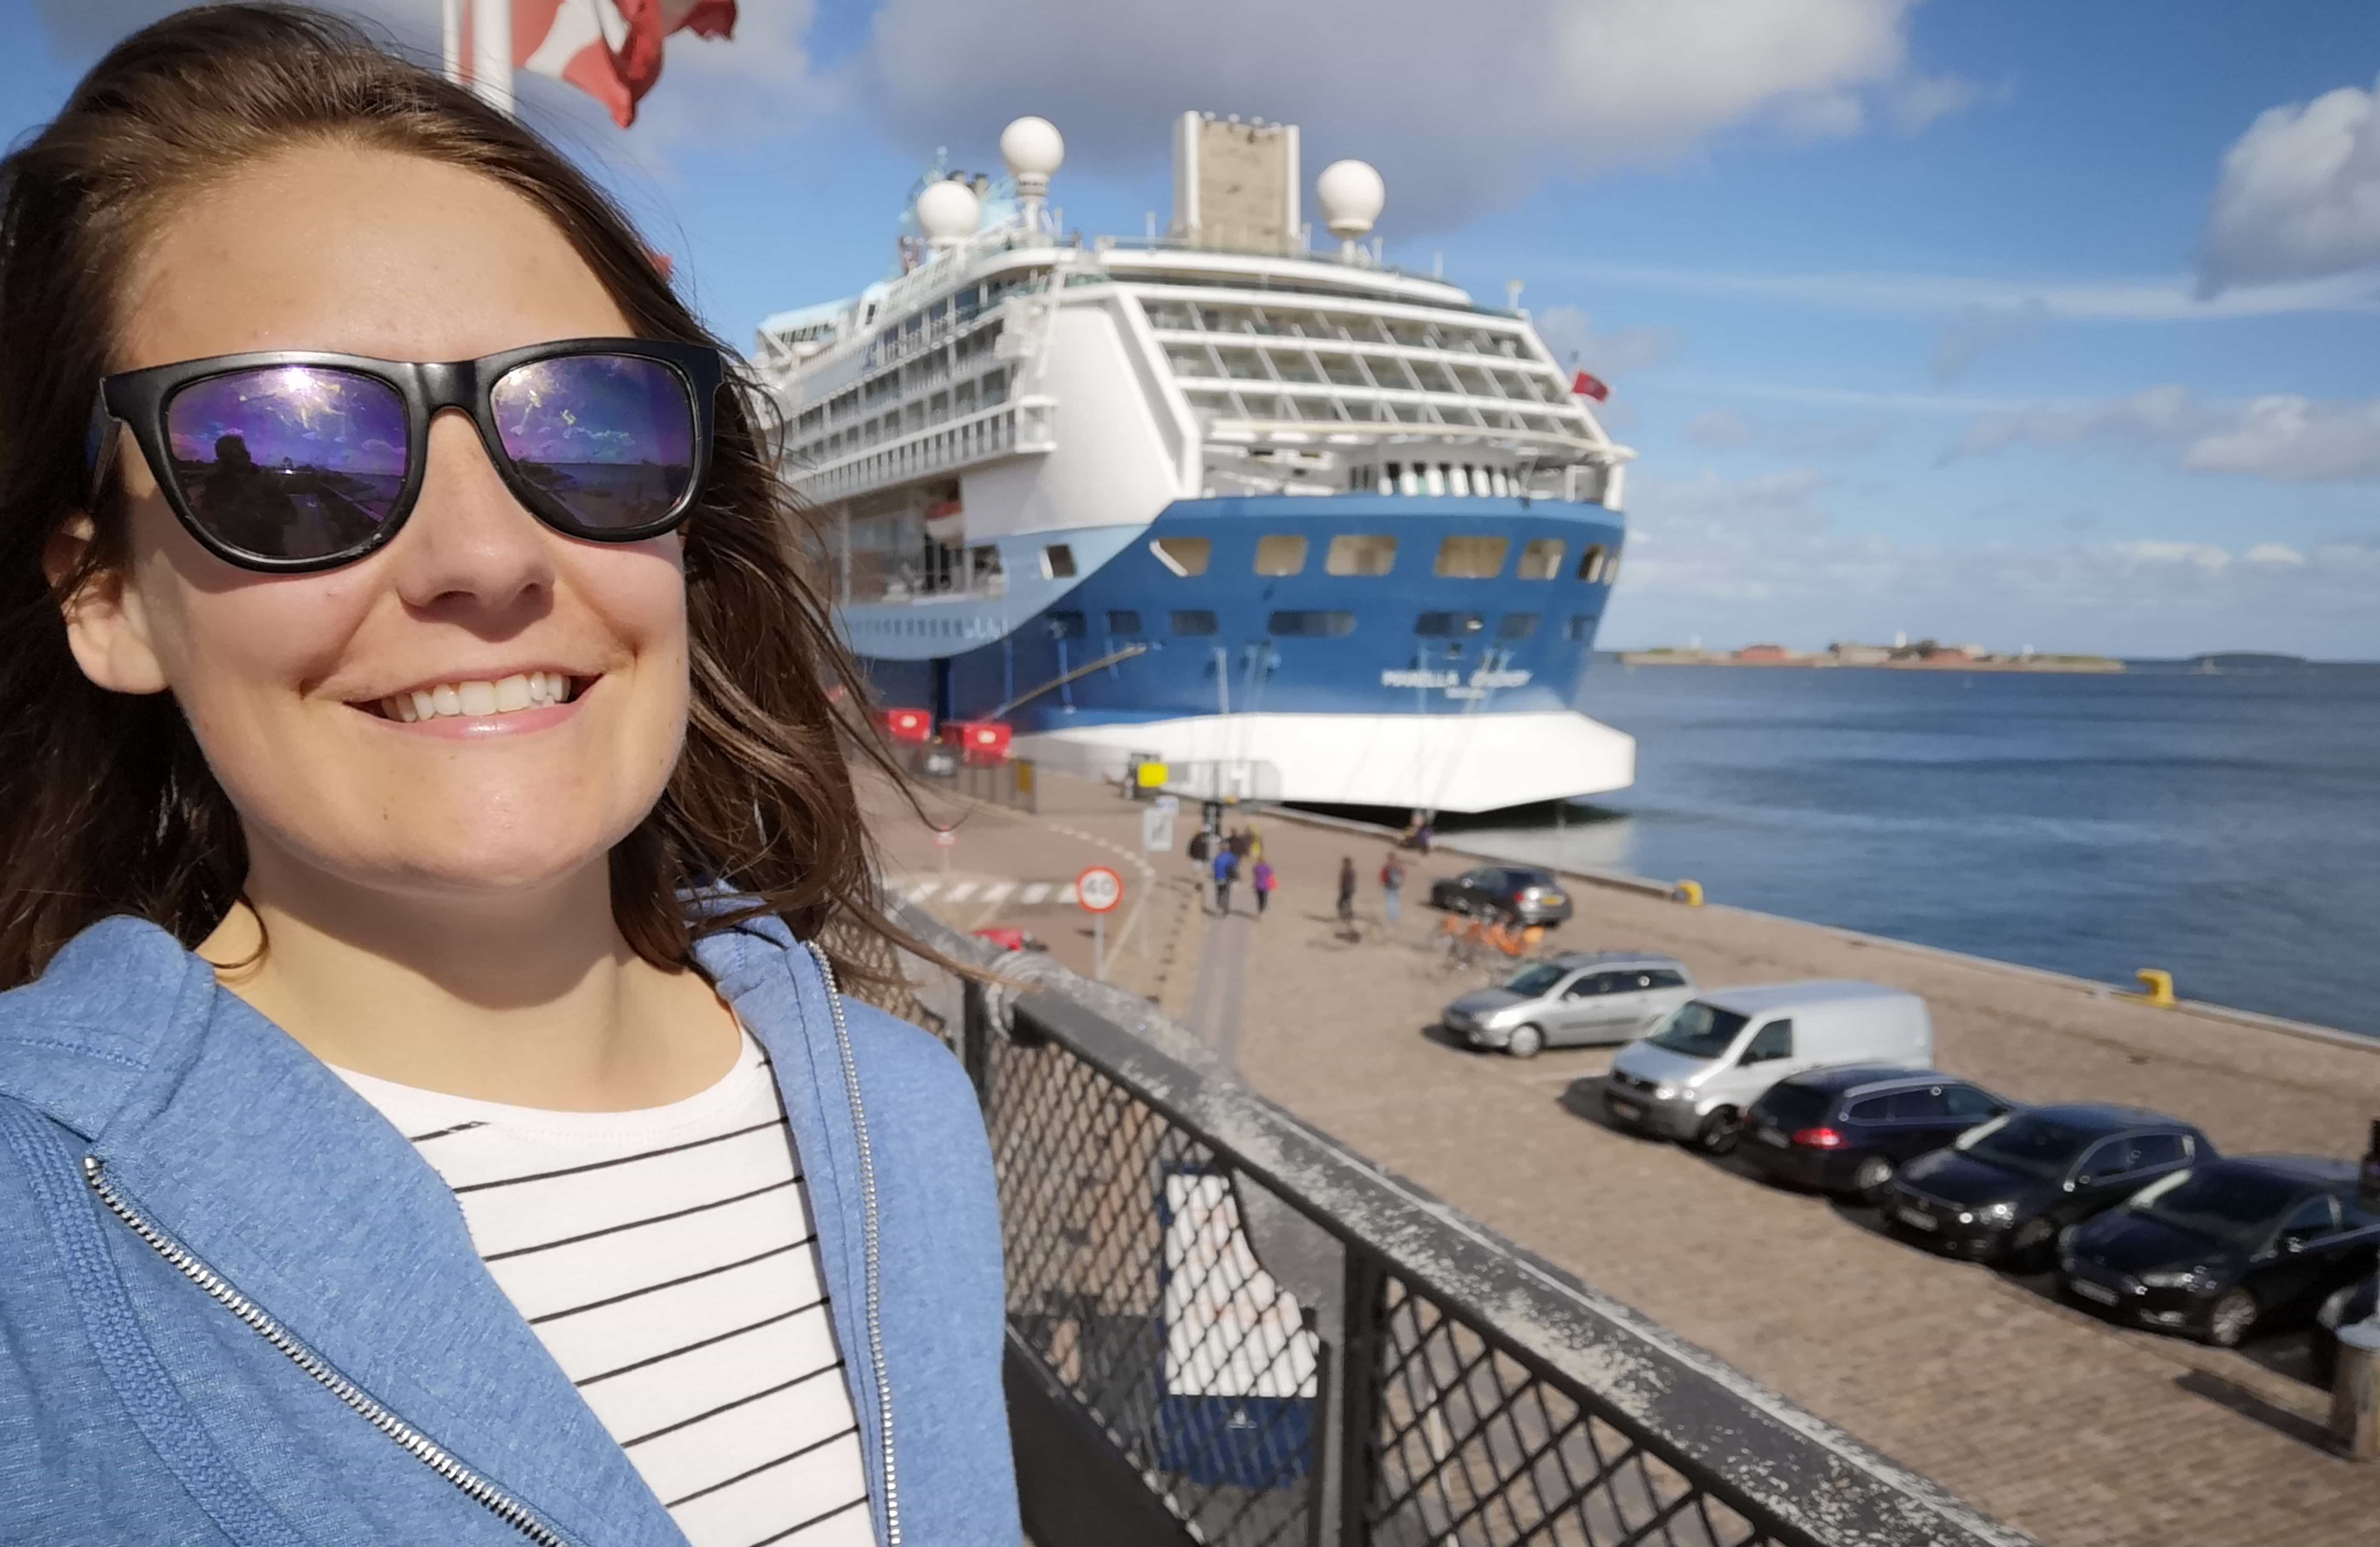 girl and cruise ship marella discovery in copenhagen